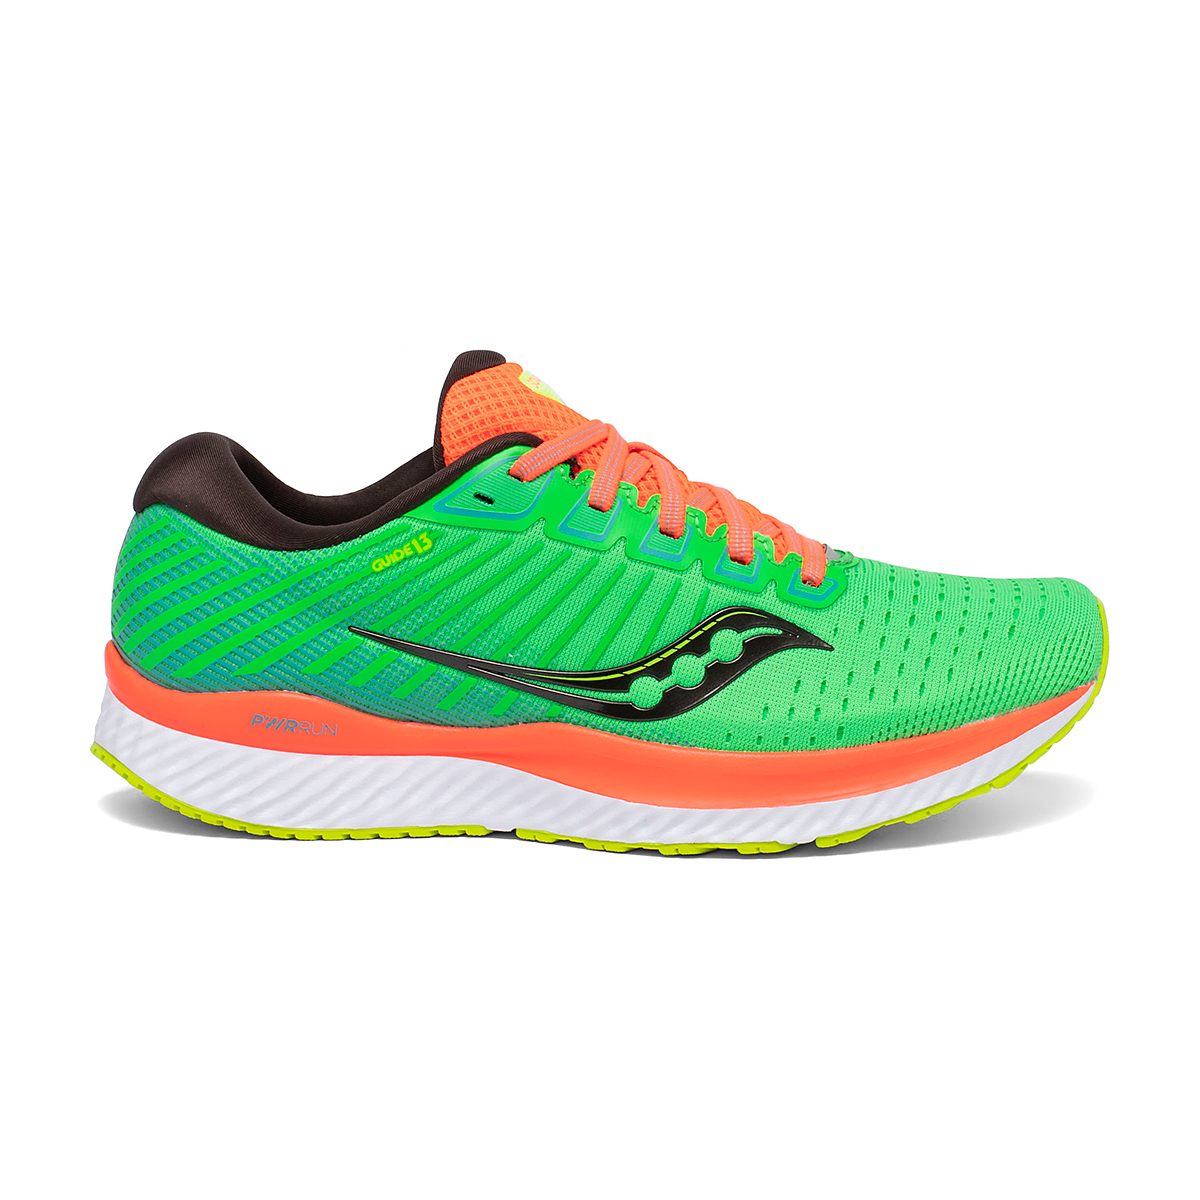 Women's Saucony Guide 13 Running Shoe - Color: Green Mutant - Size: 5 - Width: Regular, Green Mutant, large, image 1